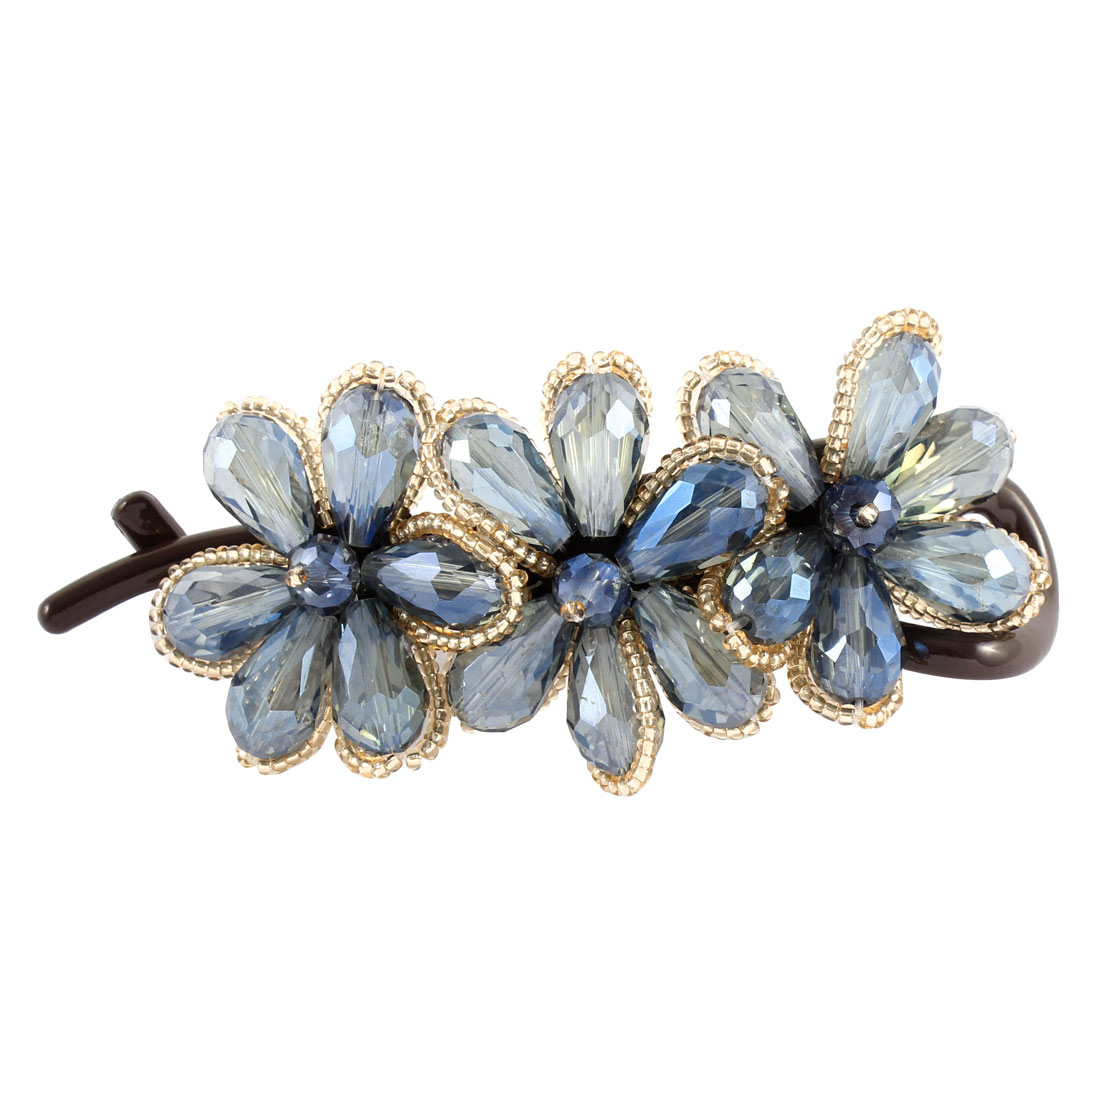 Blue Crystal Flower Shaped Banana Hair Clip Claw Clasp Pin Barrette Hairpin for Women